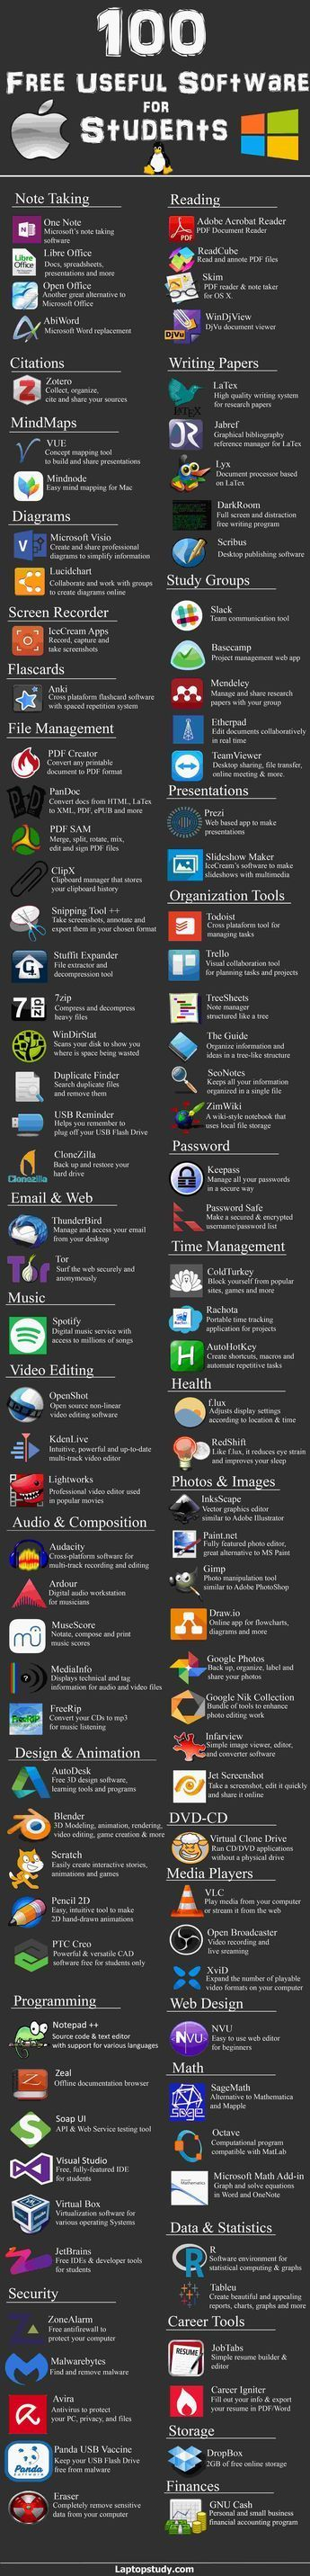 The internet's biggest and most complete list of free software for all students. Whether you are in the arts & humanities, liberal arts & sciences, engineering, architecture or any other major you should find it useful for your studies and for your budget too.